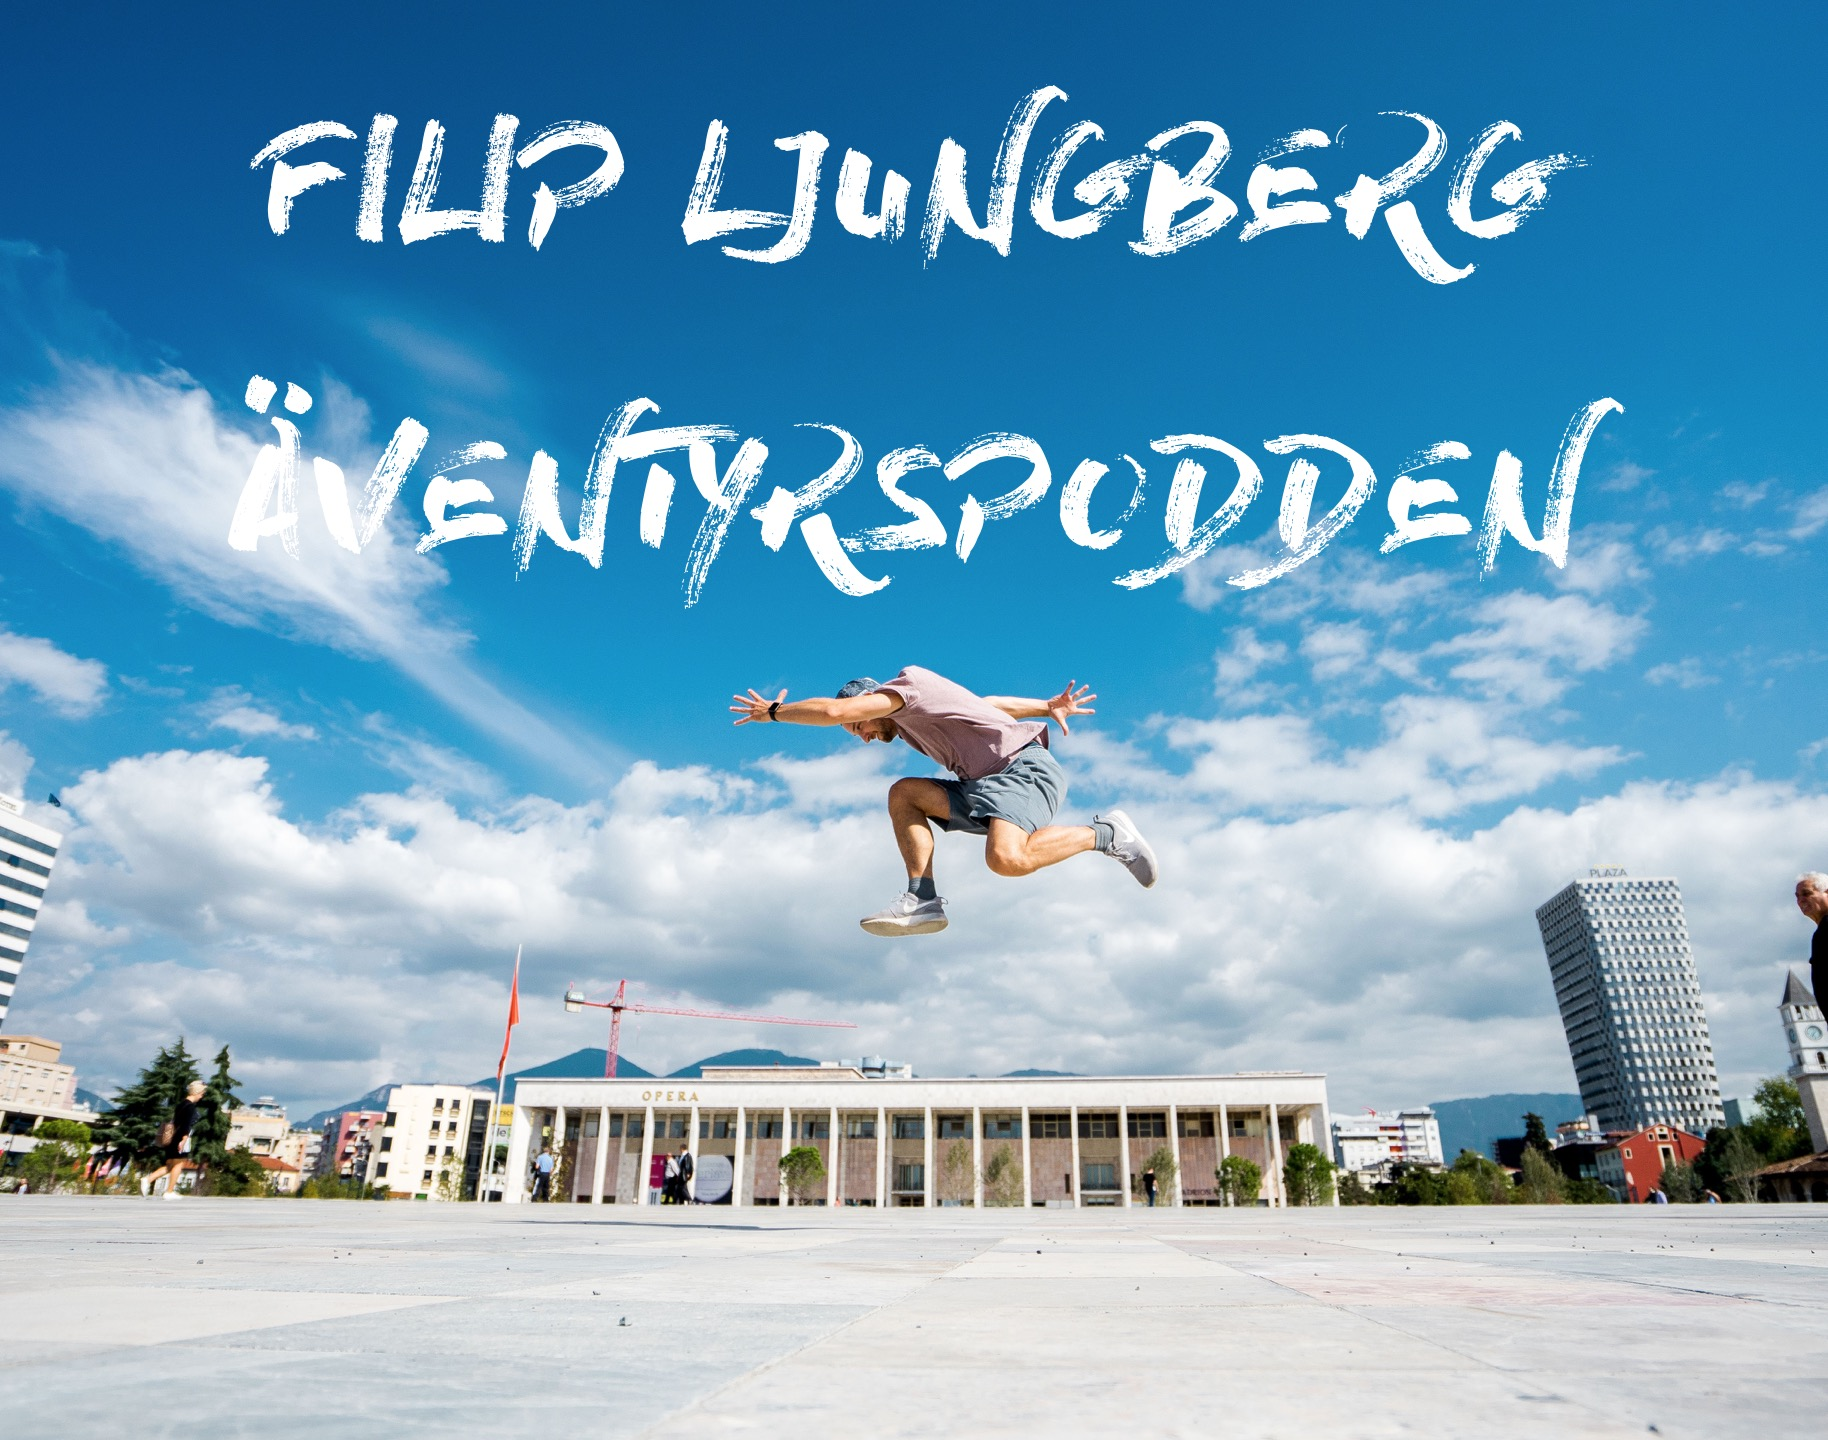 Filip Ljungberg's Podcast